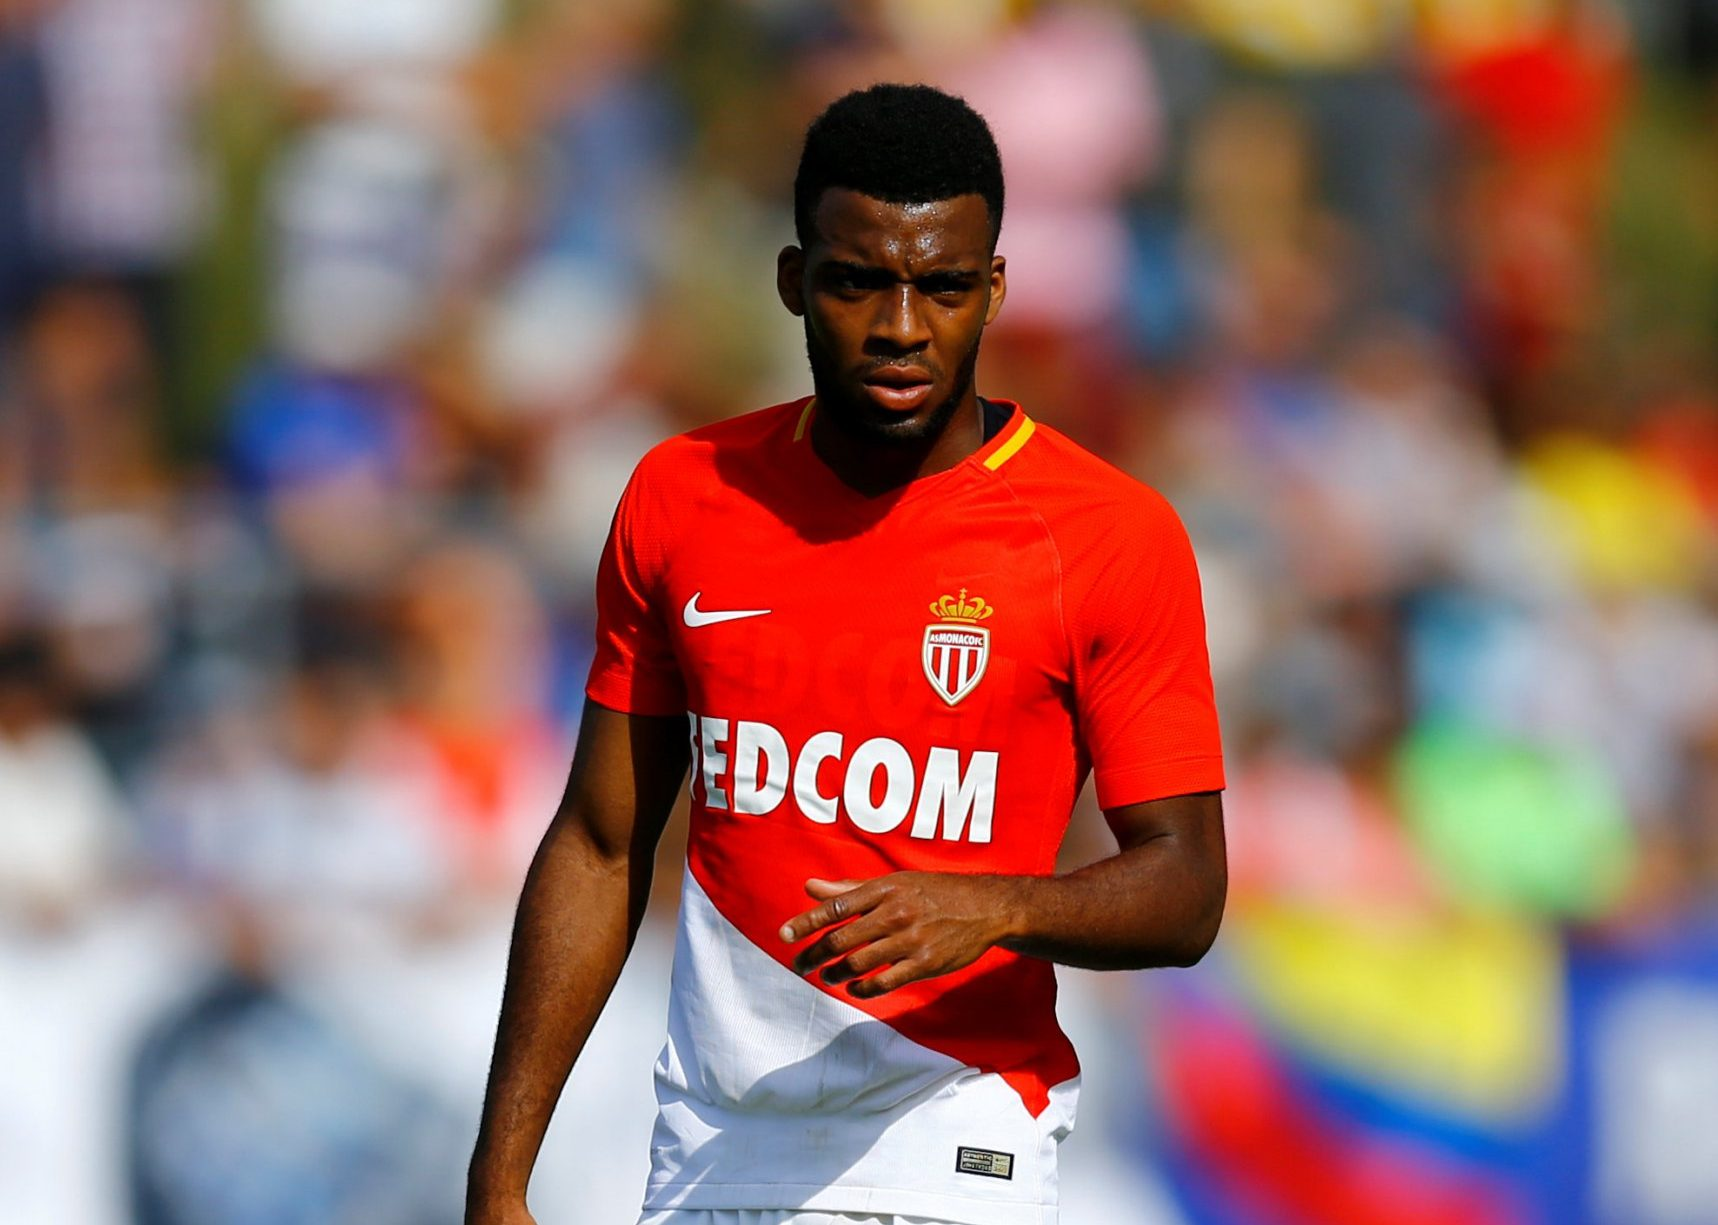 Thomas Lemar breaks silence after rejecting Arsenal's £92m transfer